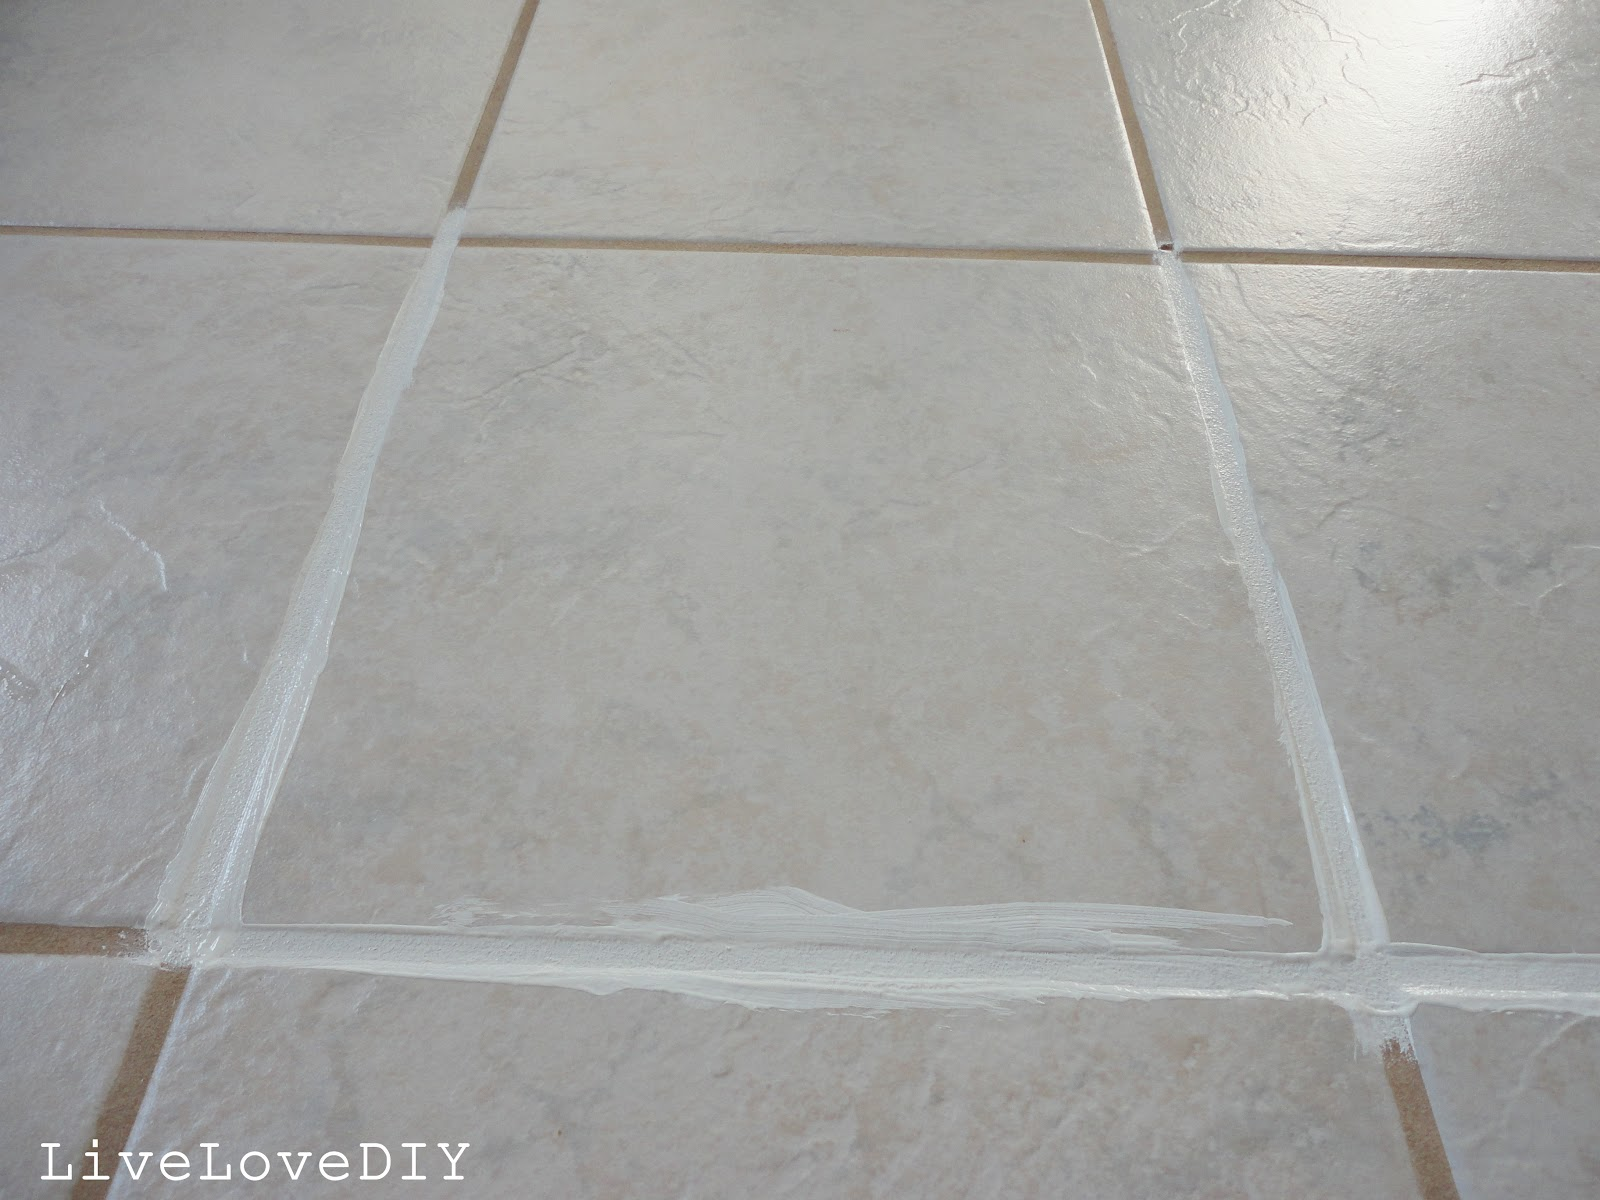 LiveLoveDIY How To Restore Dirty Tile Grout - Best method to clean tile grout